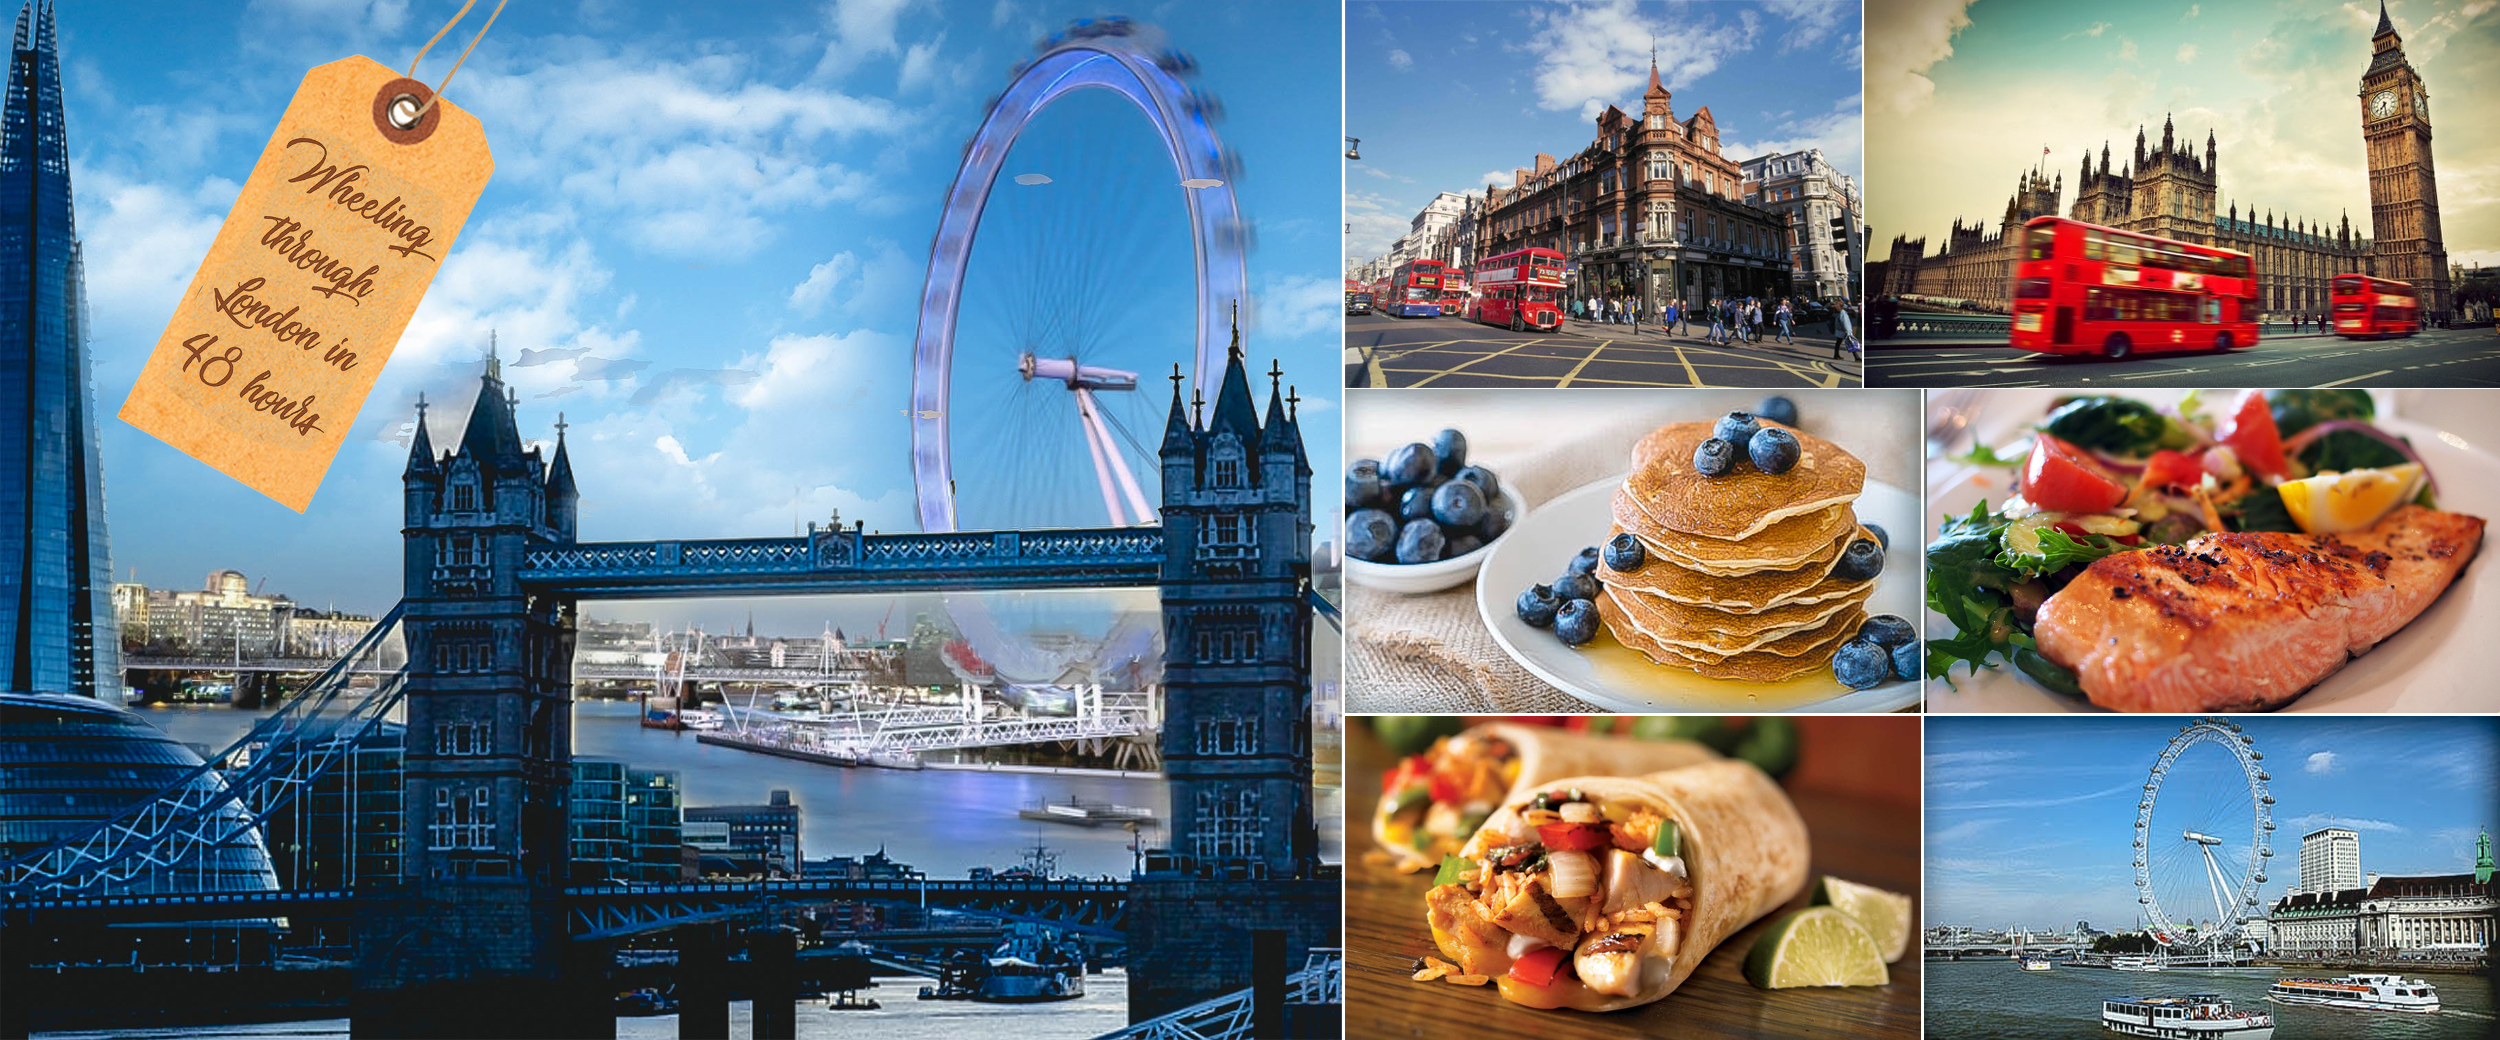 London attraction, things to do in London, mix of culture, great food, amazing sights, different type foods